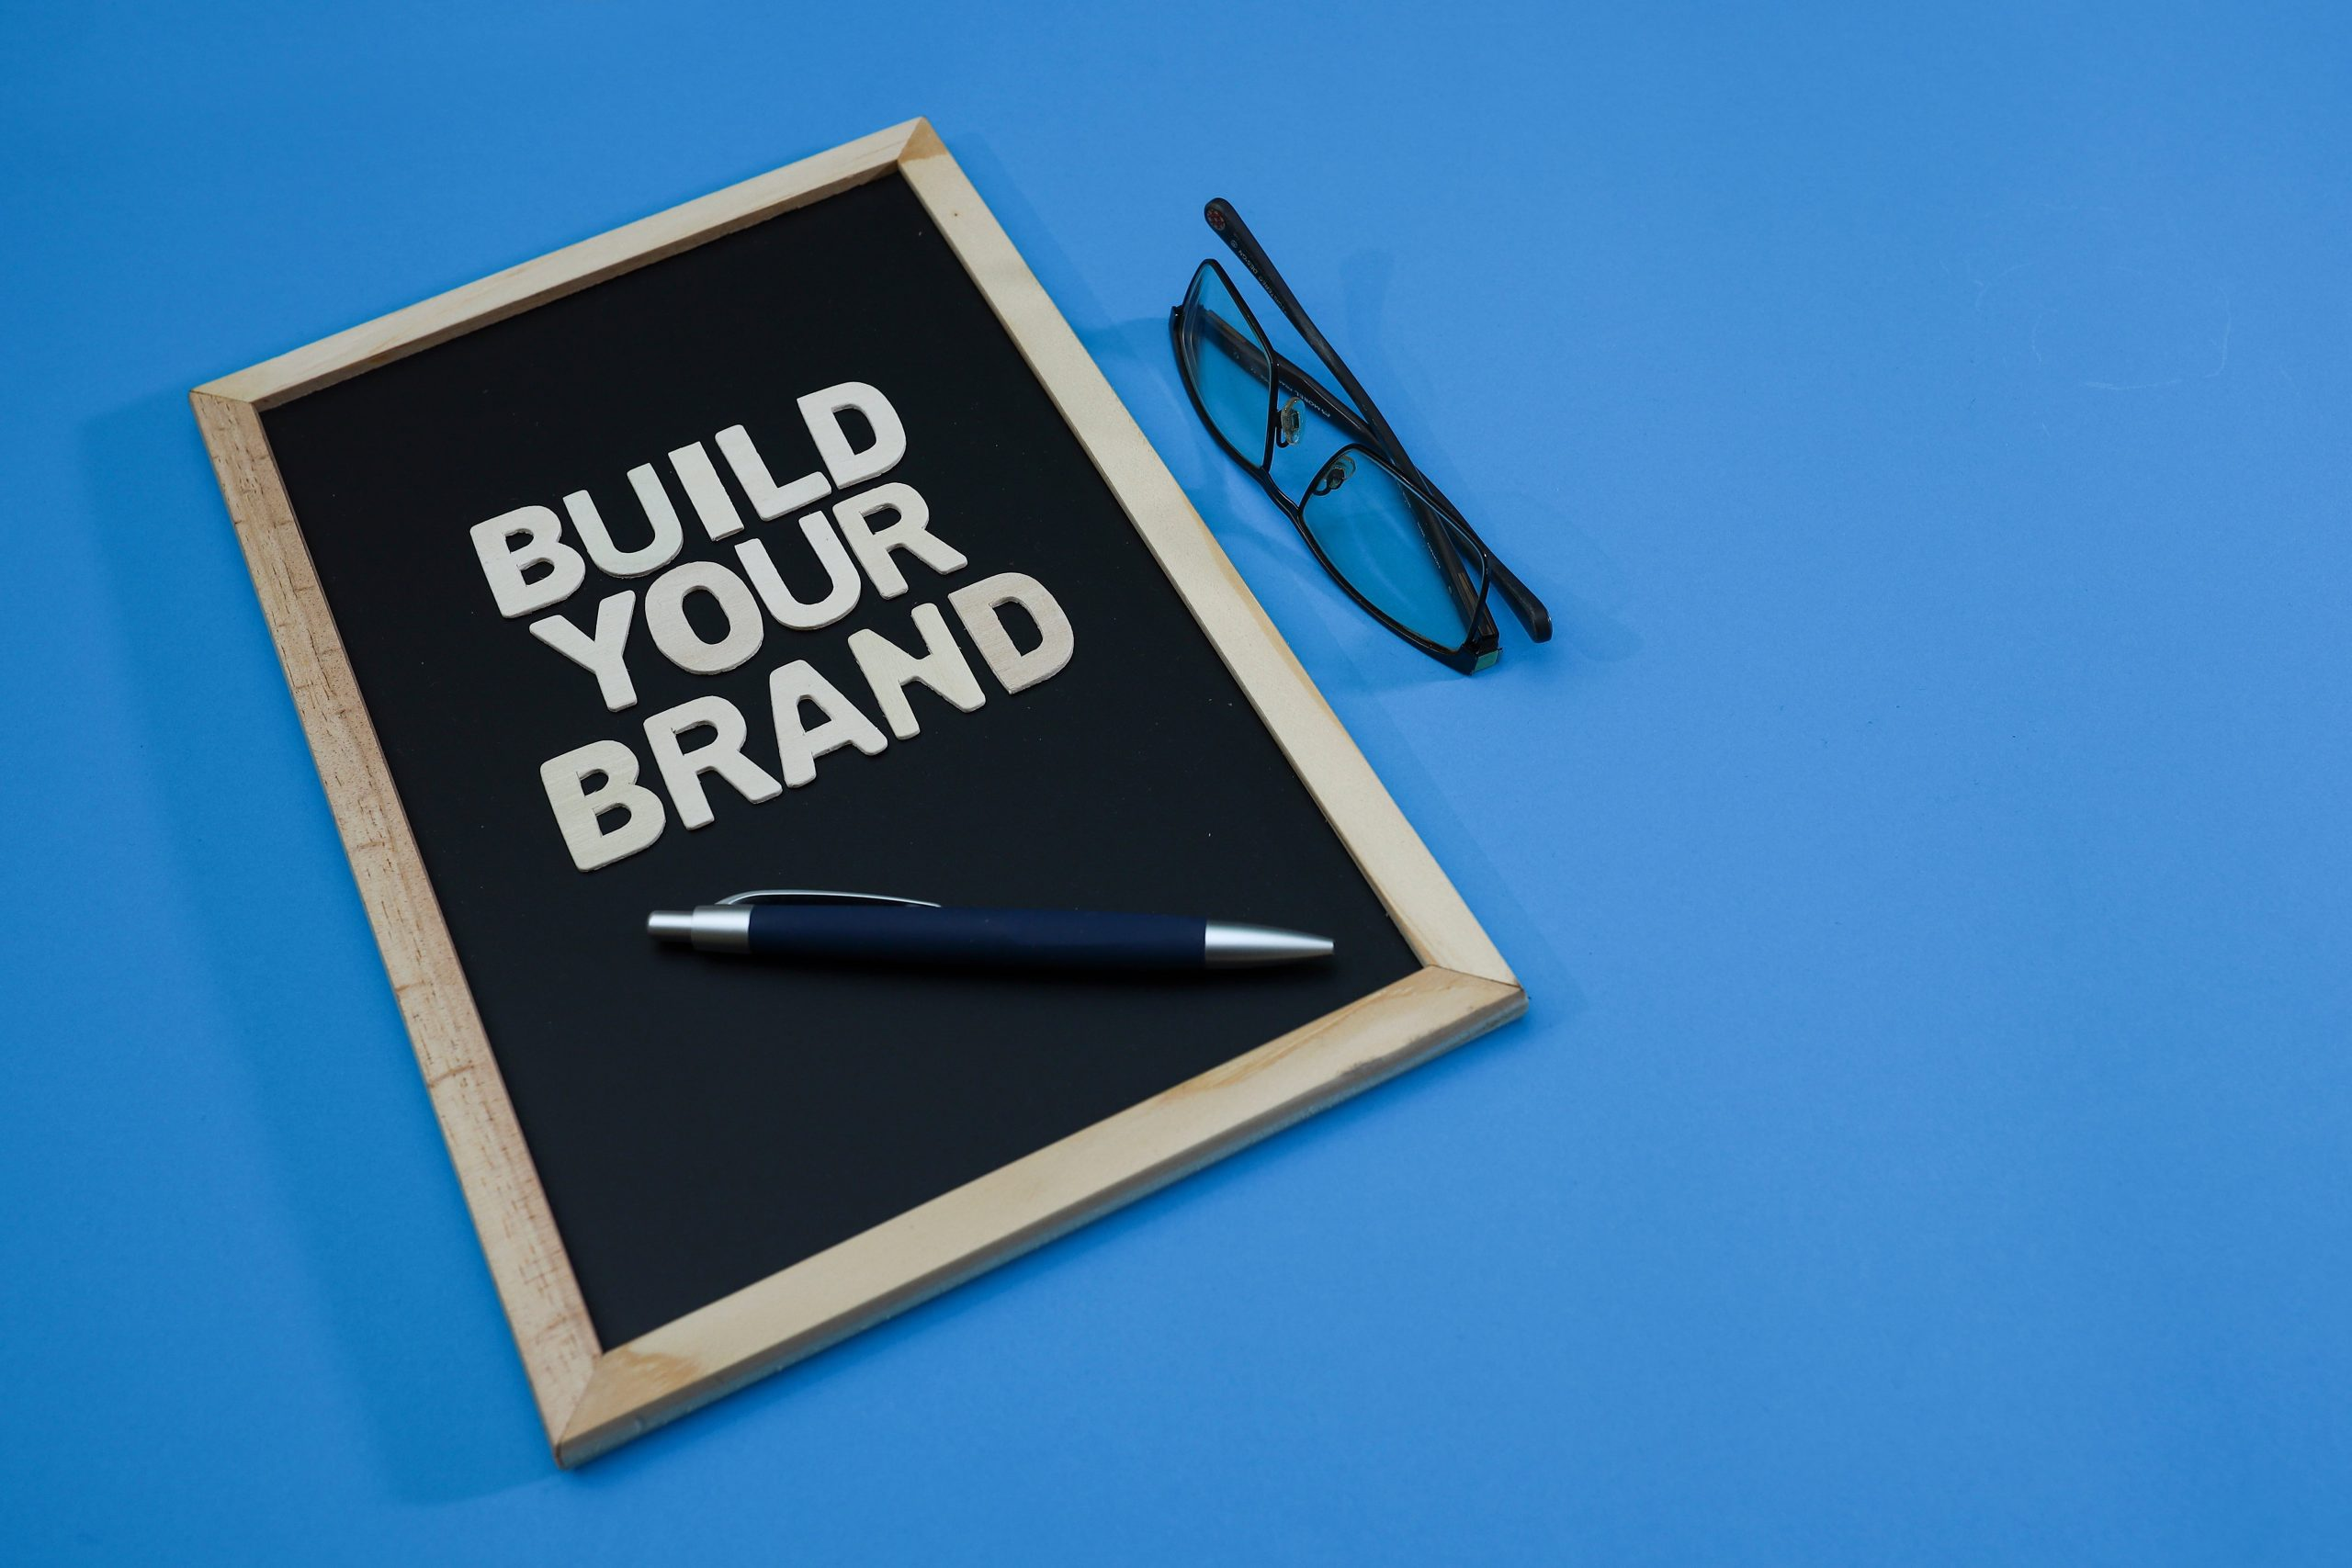 Using Storytelling to strengthen your brand